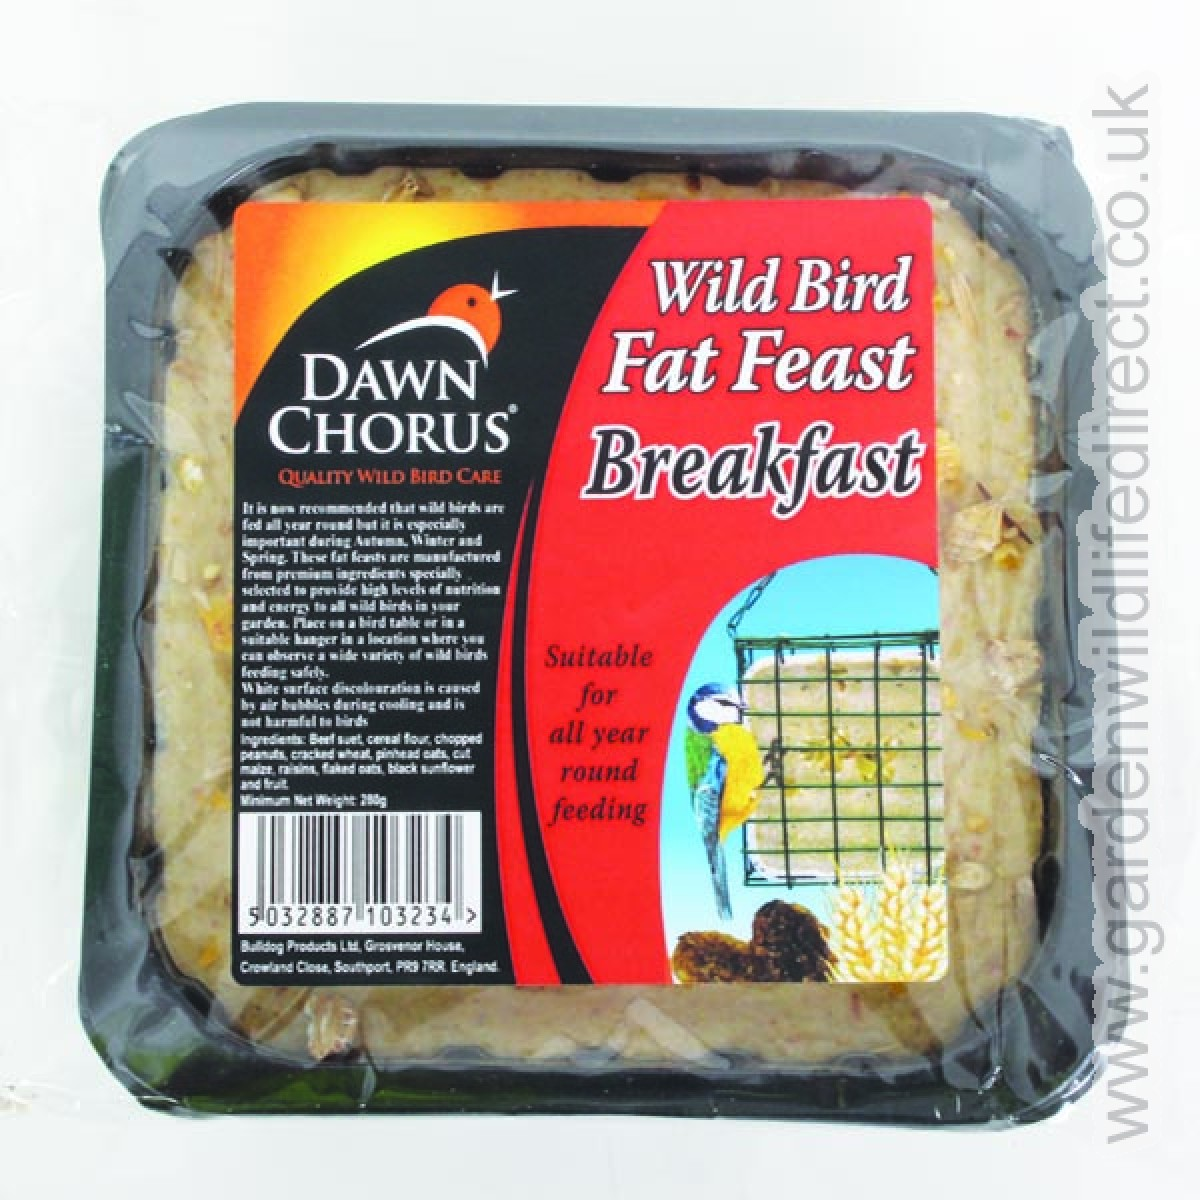 Suet blocks are a common treat for birds